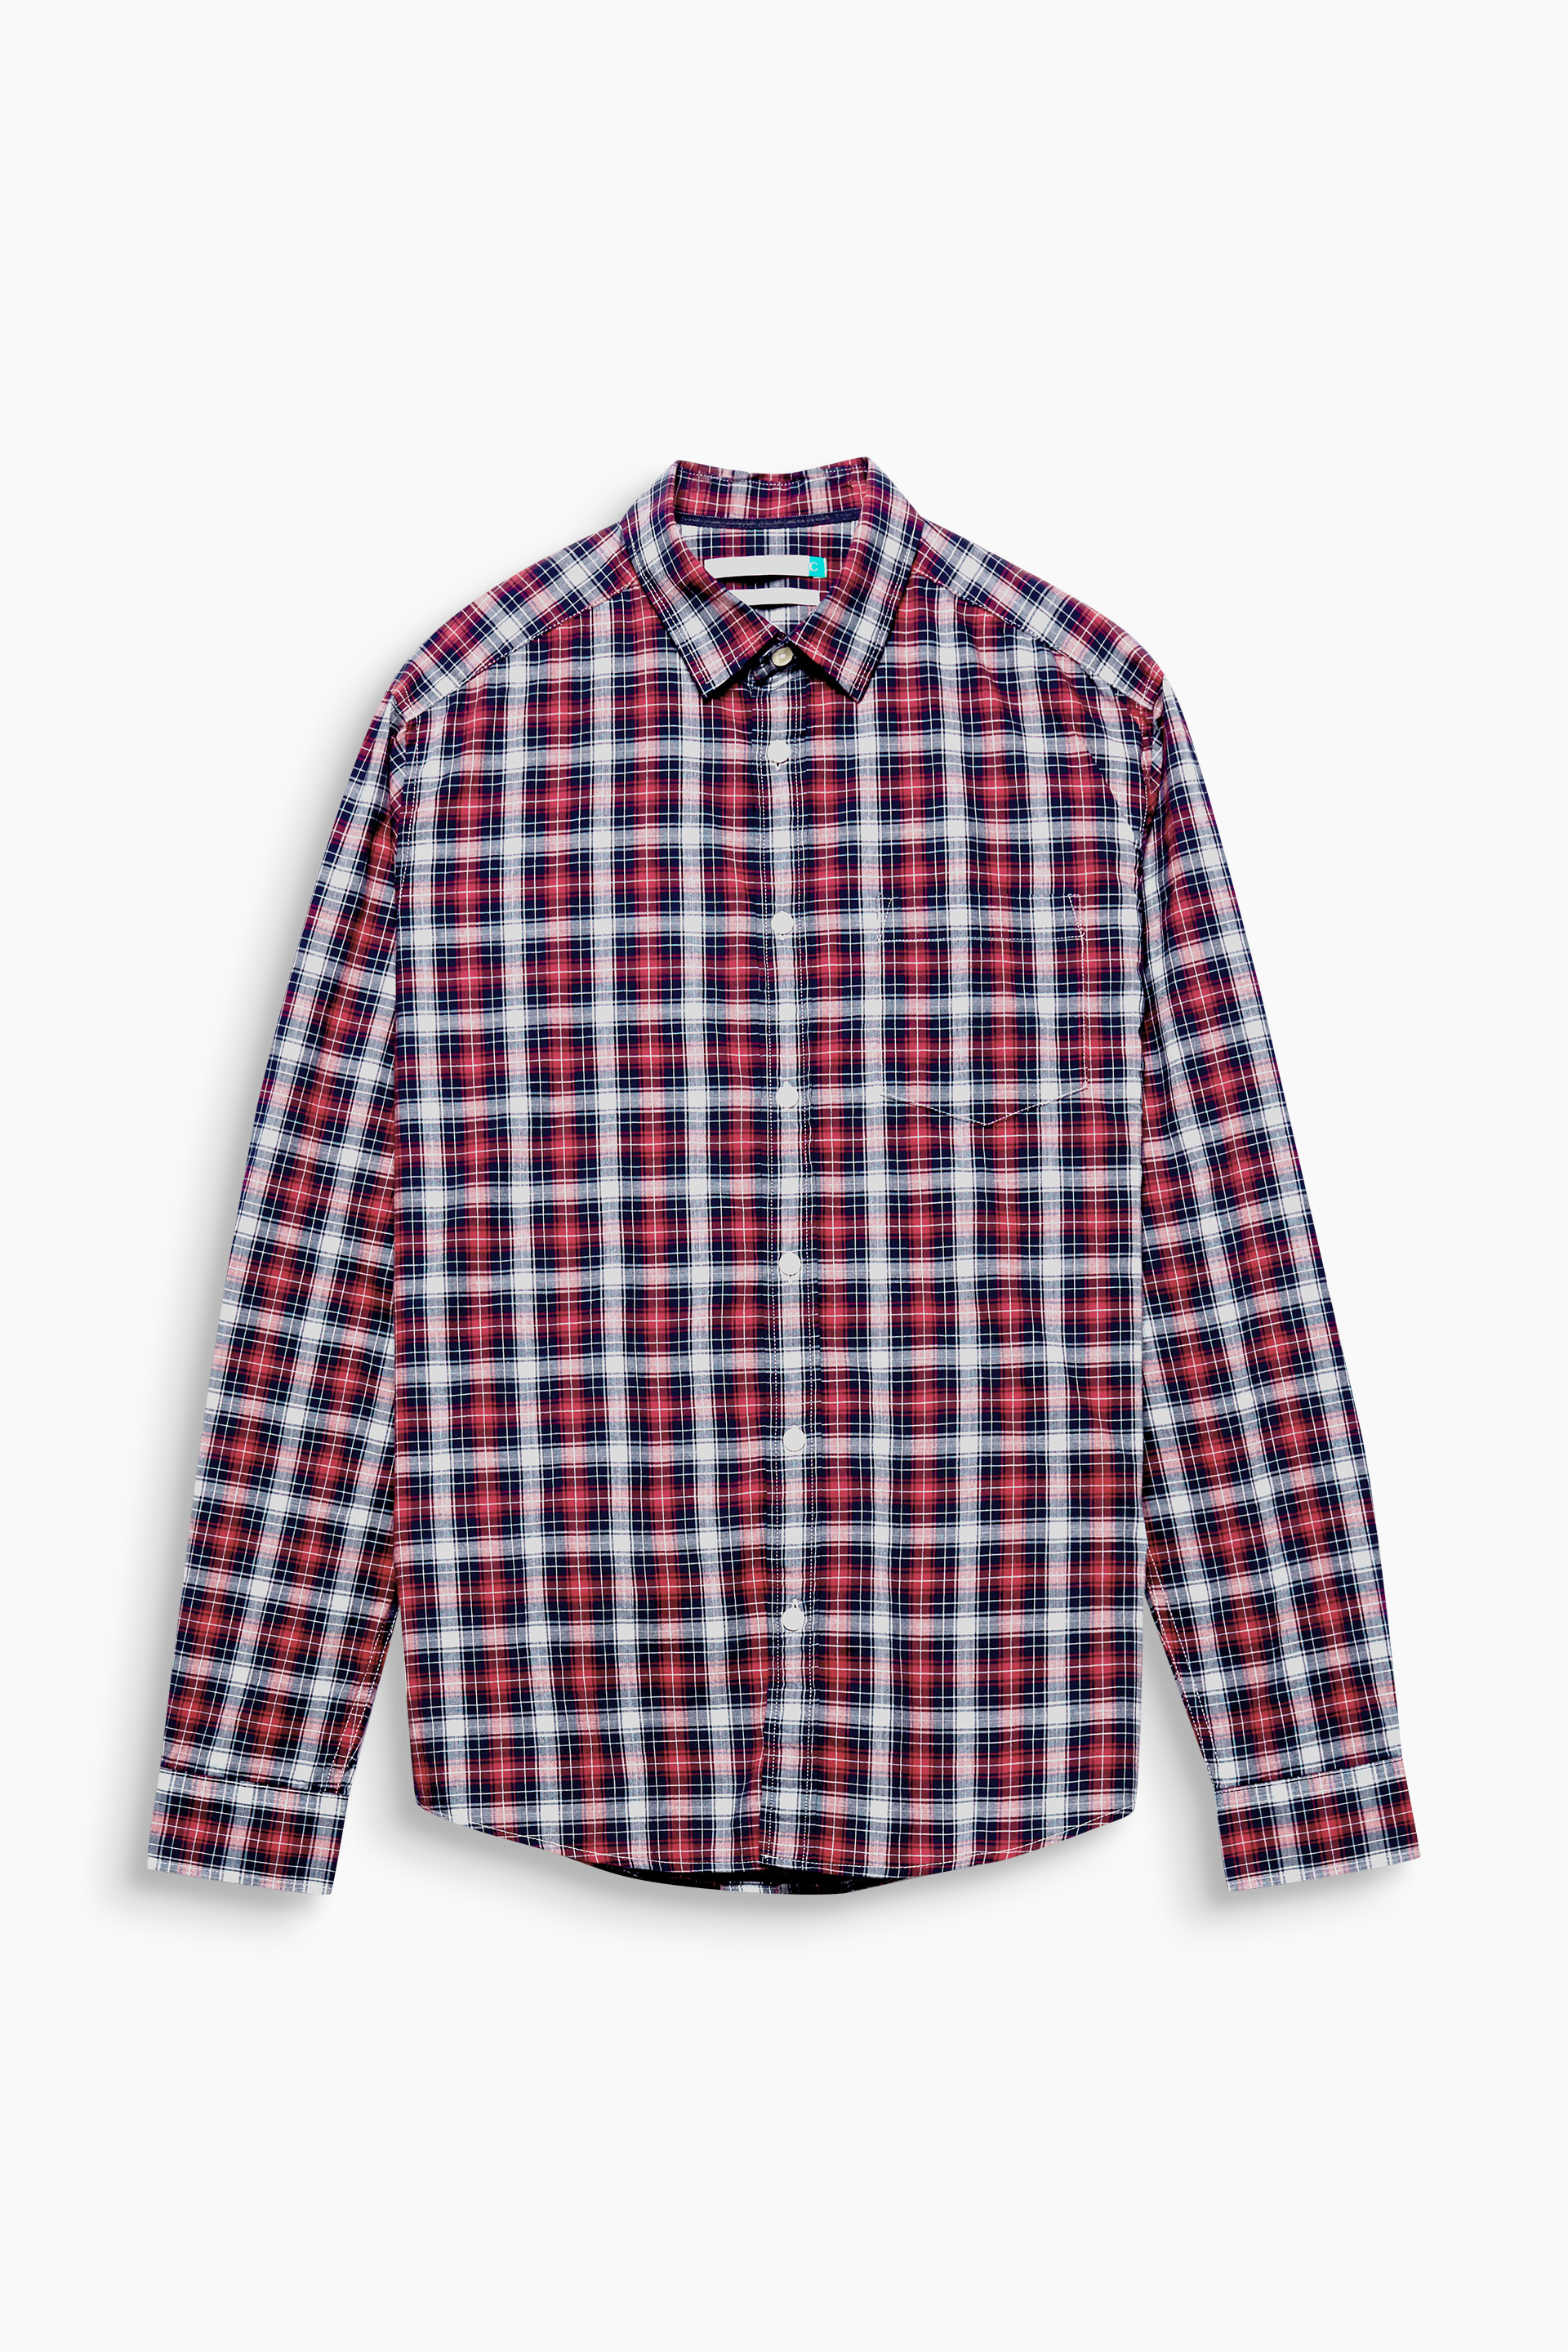 Esprit RED 631 Long Sleeve Check Shirt In Organic Cotton